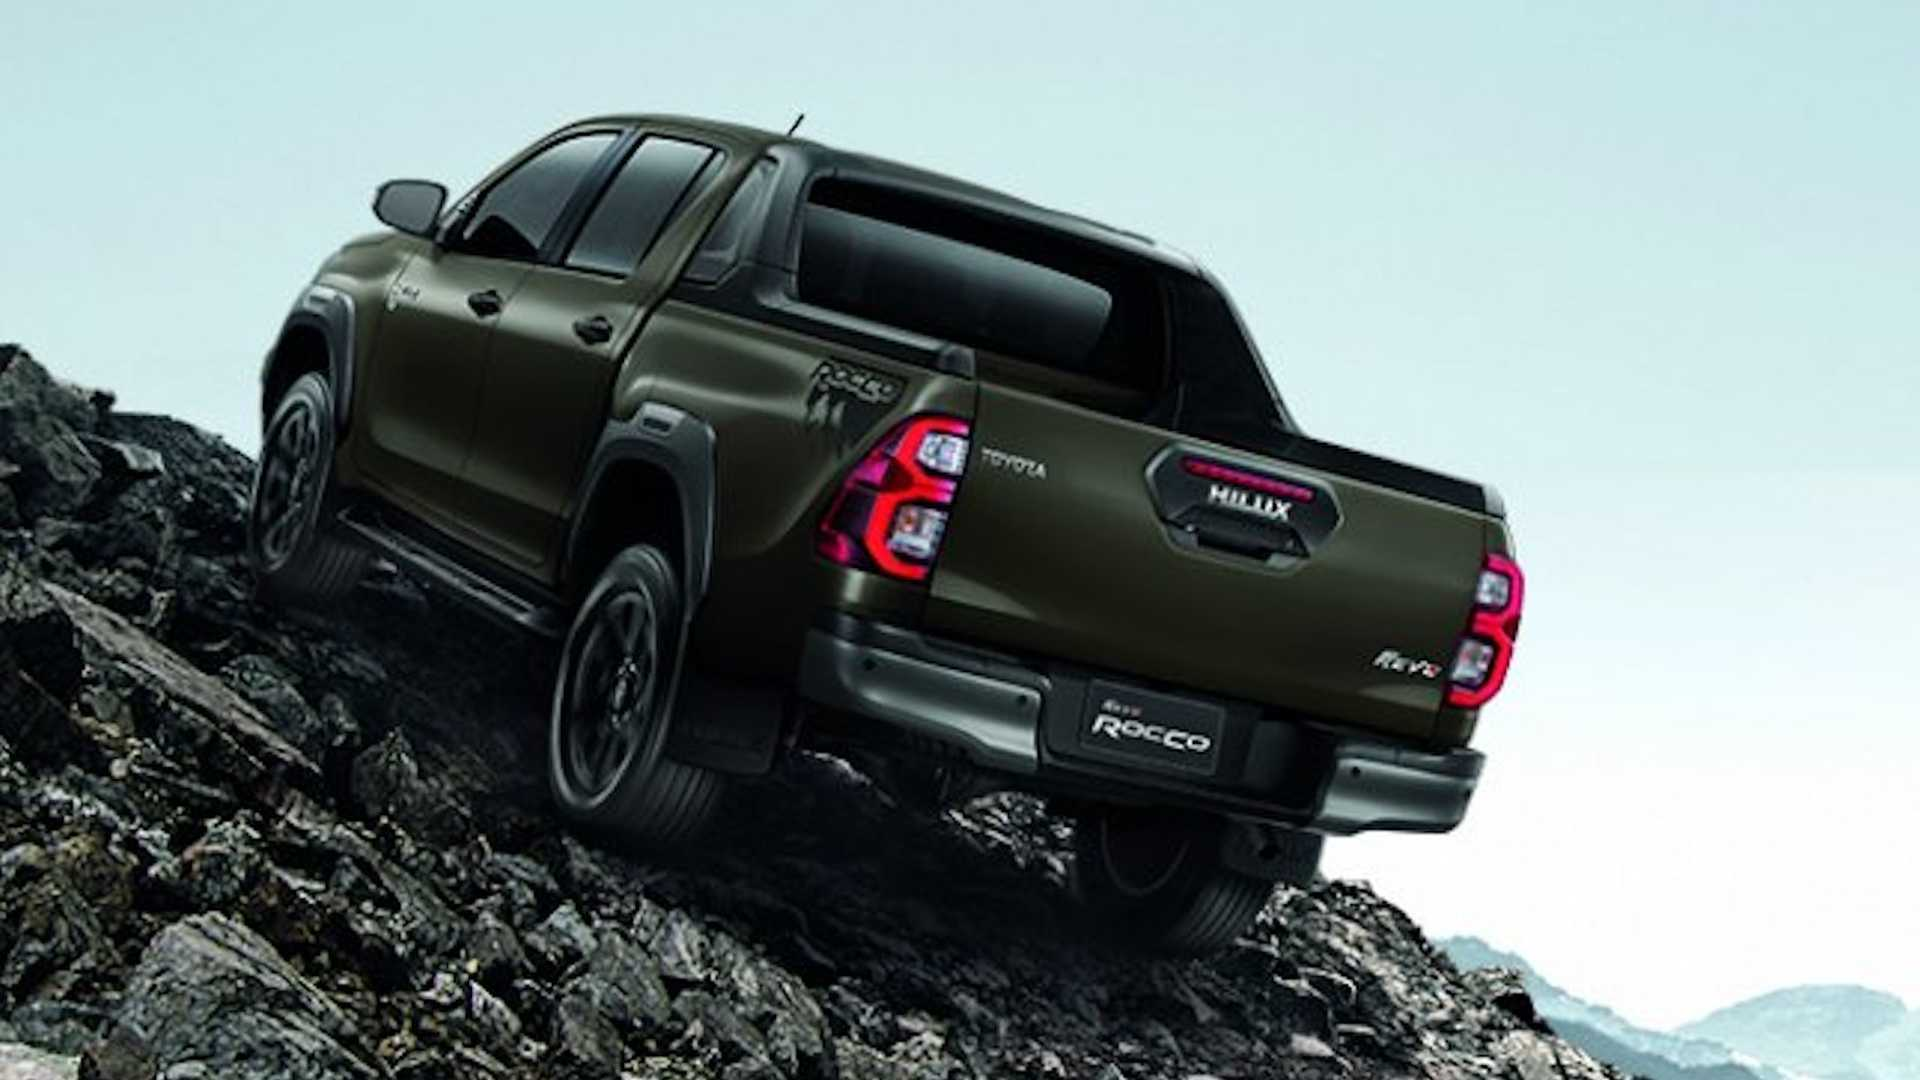 2021-toyota-hilux-launched-in-thailand-8.jpg